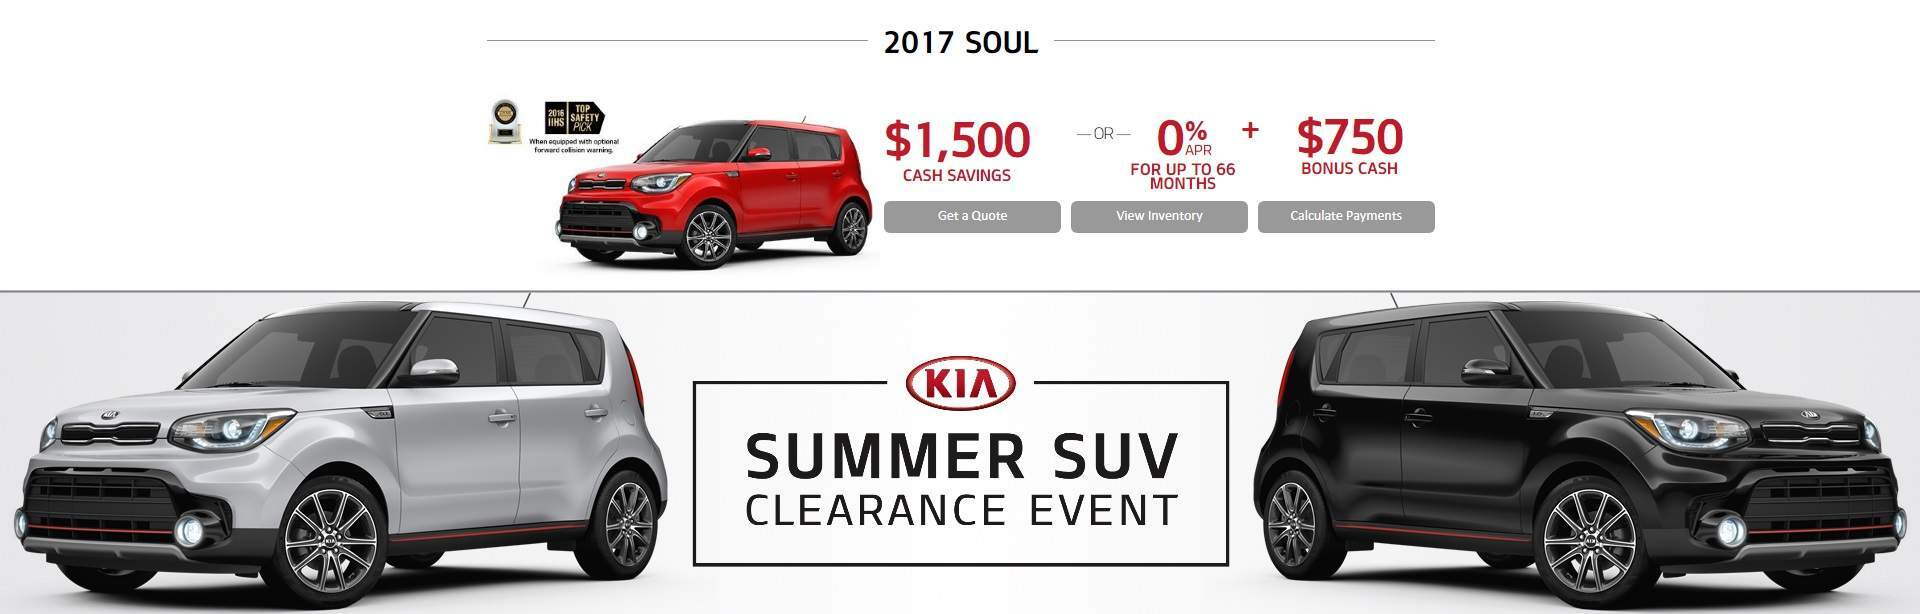 Summer SUV Clearance Event: SOUL